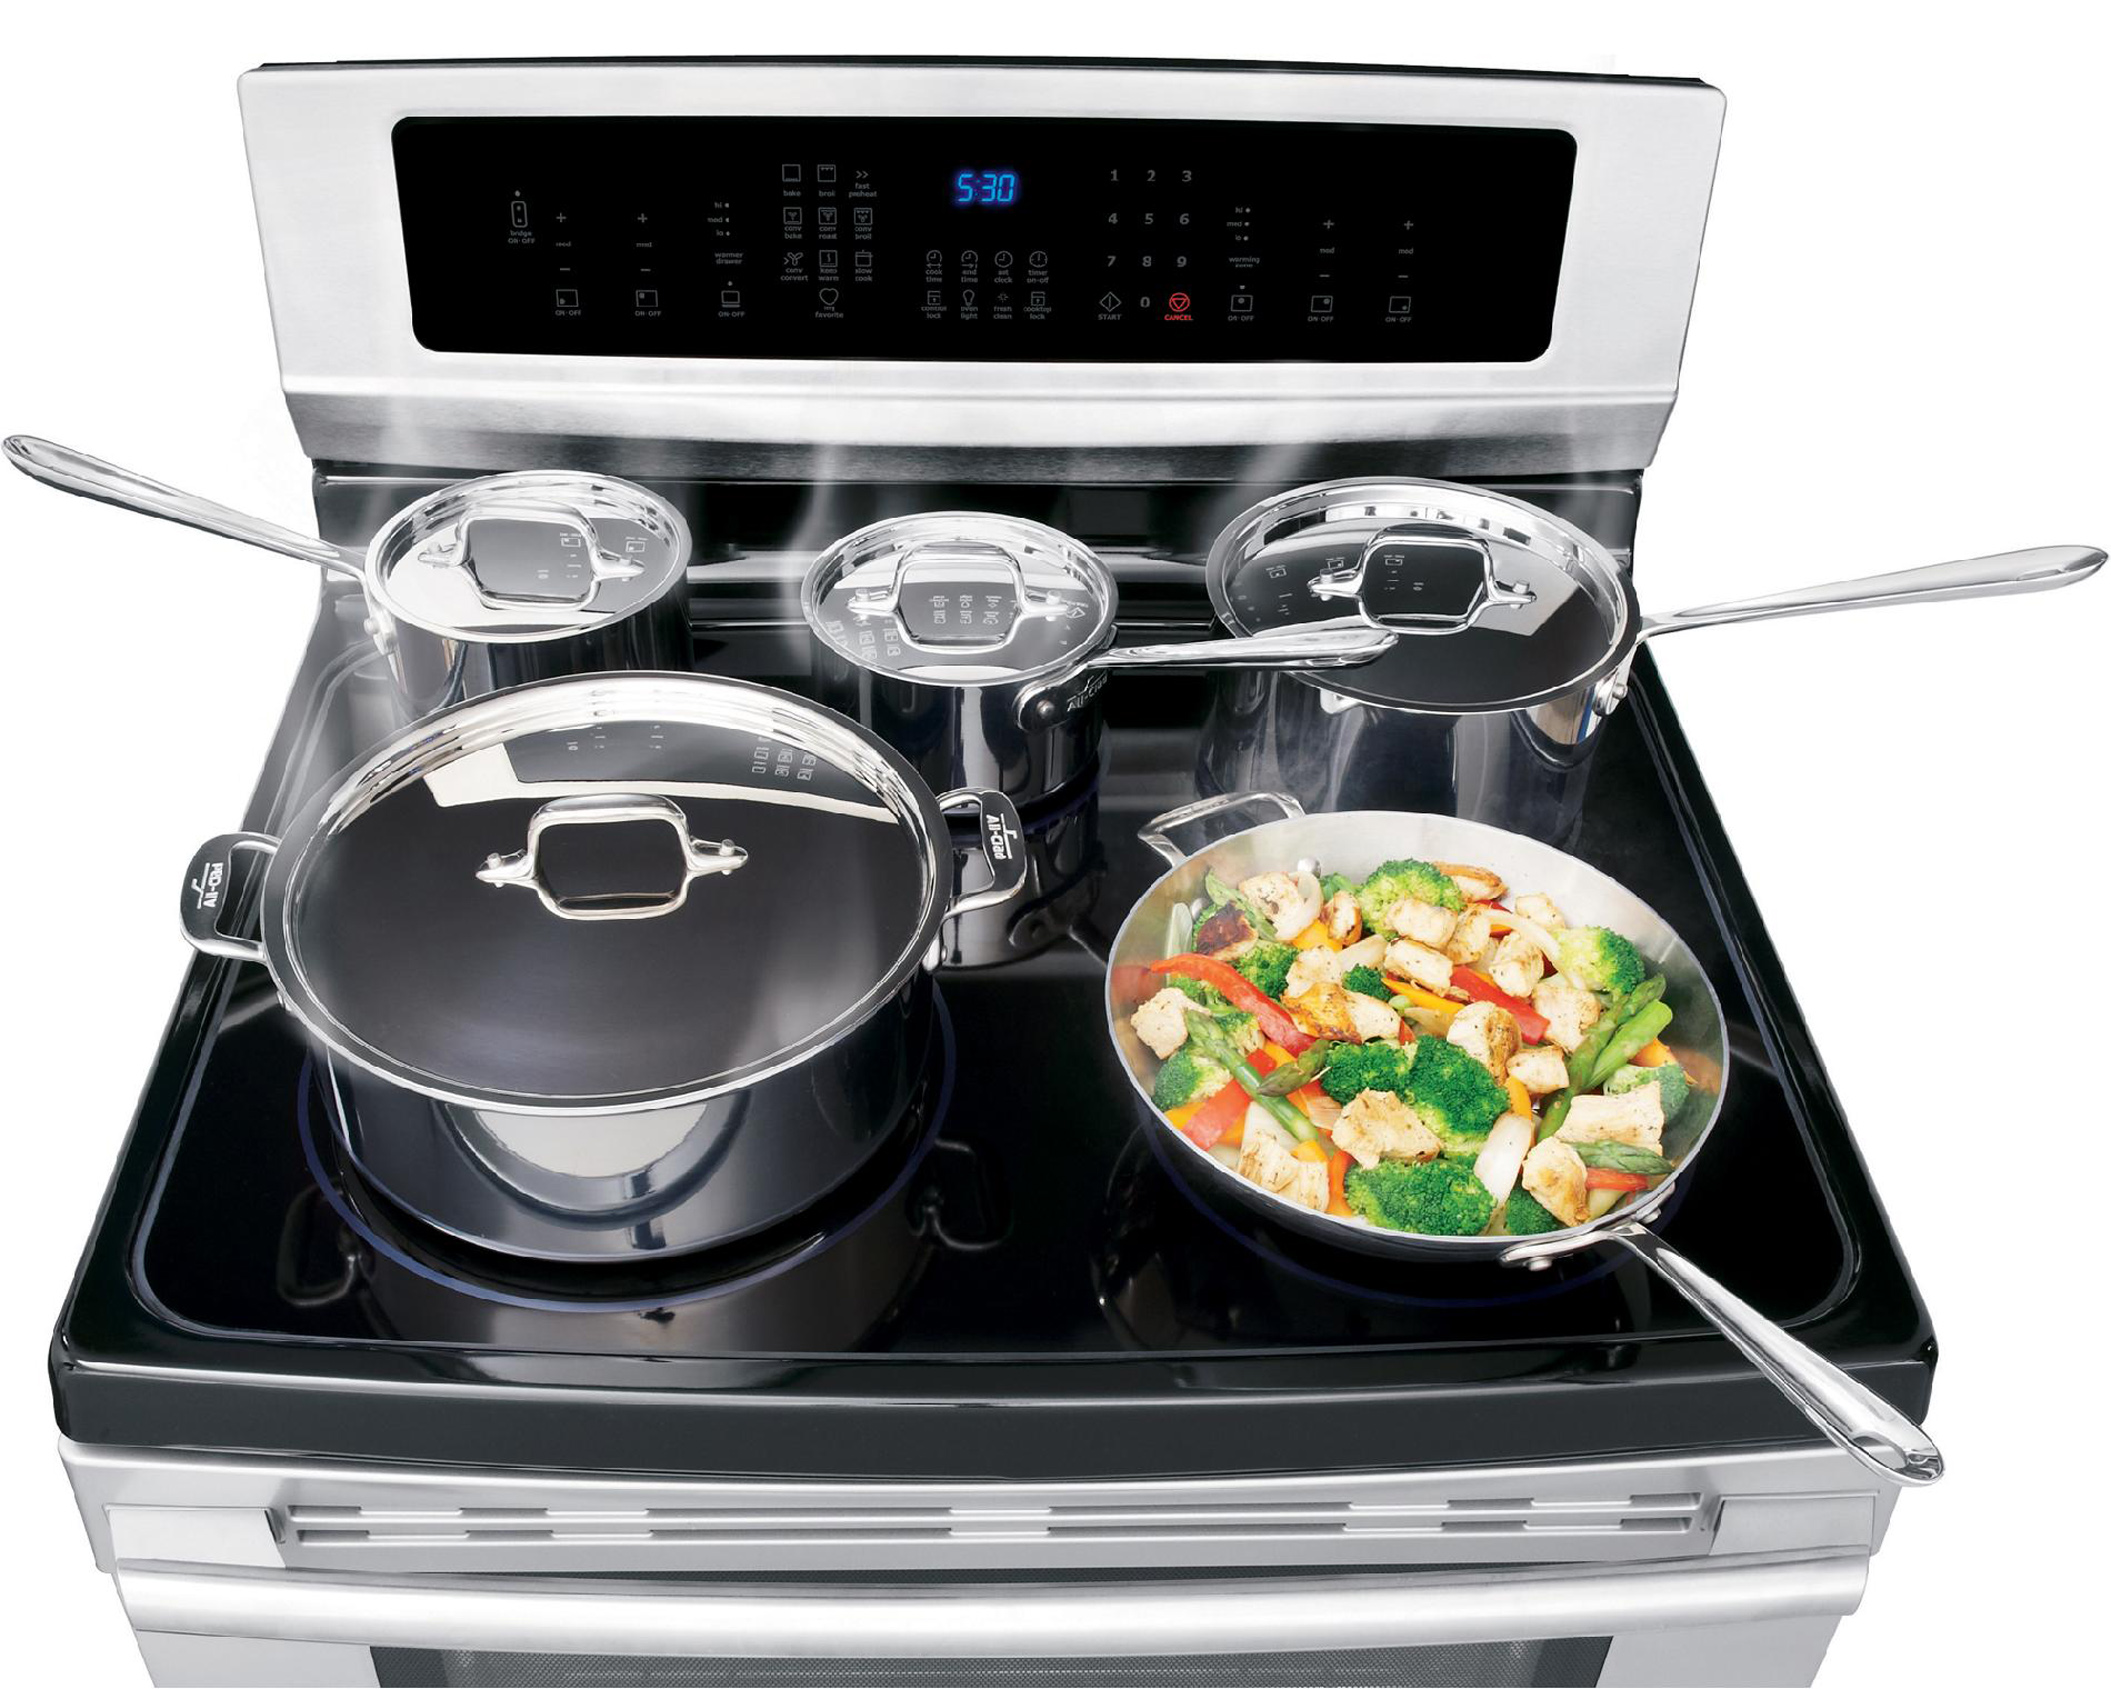 Electrolux EI30IF40LS 6.0 cu. ft. Electric Range w/ Induction Cooktop and IQ-Touch™ Controls - Stainless Steel